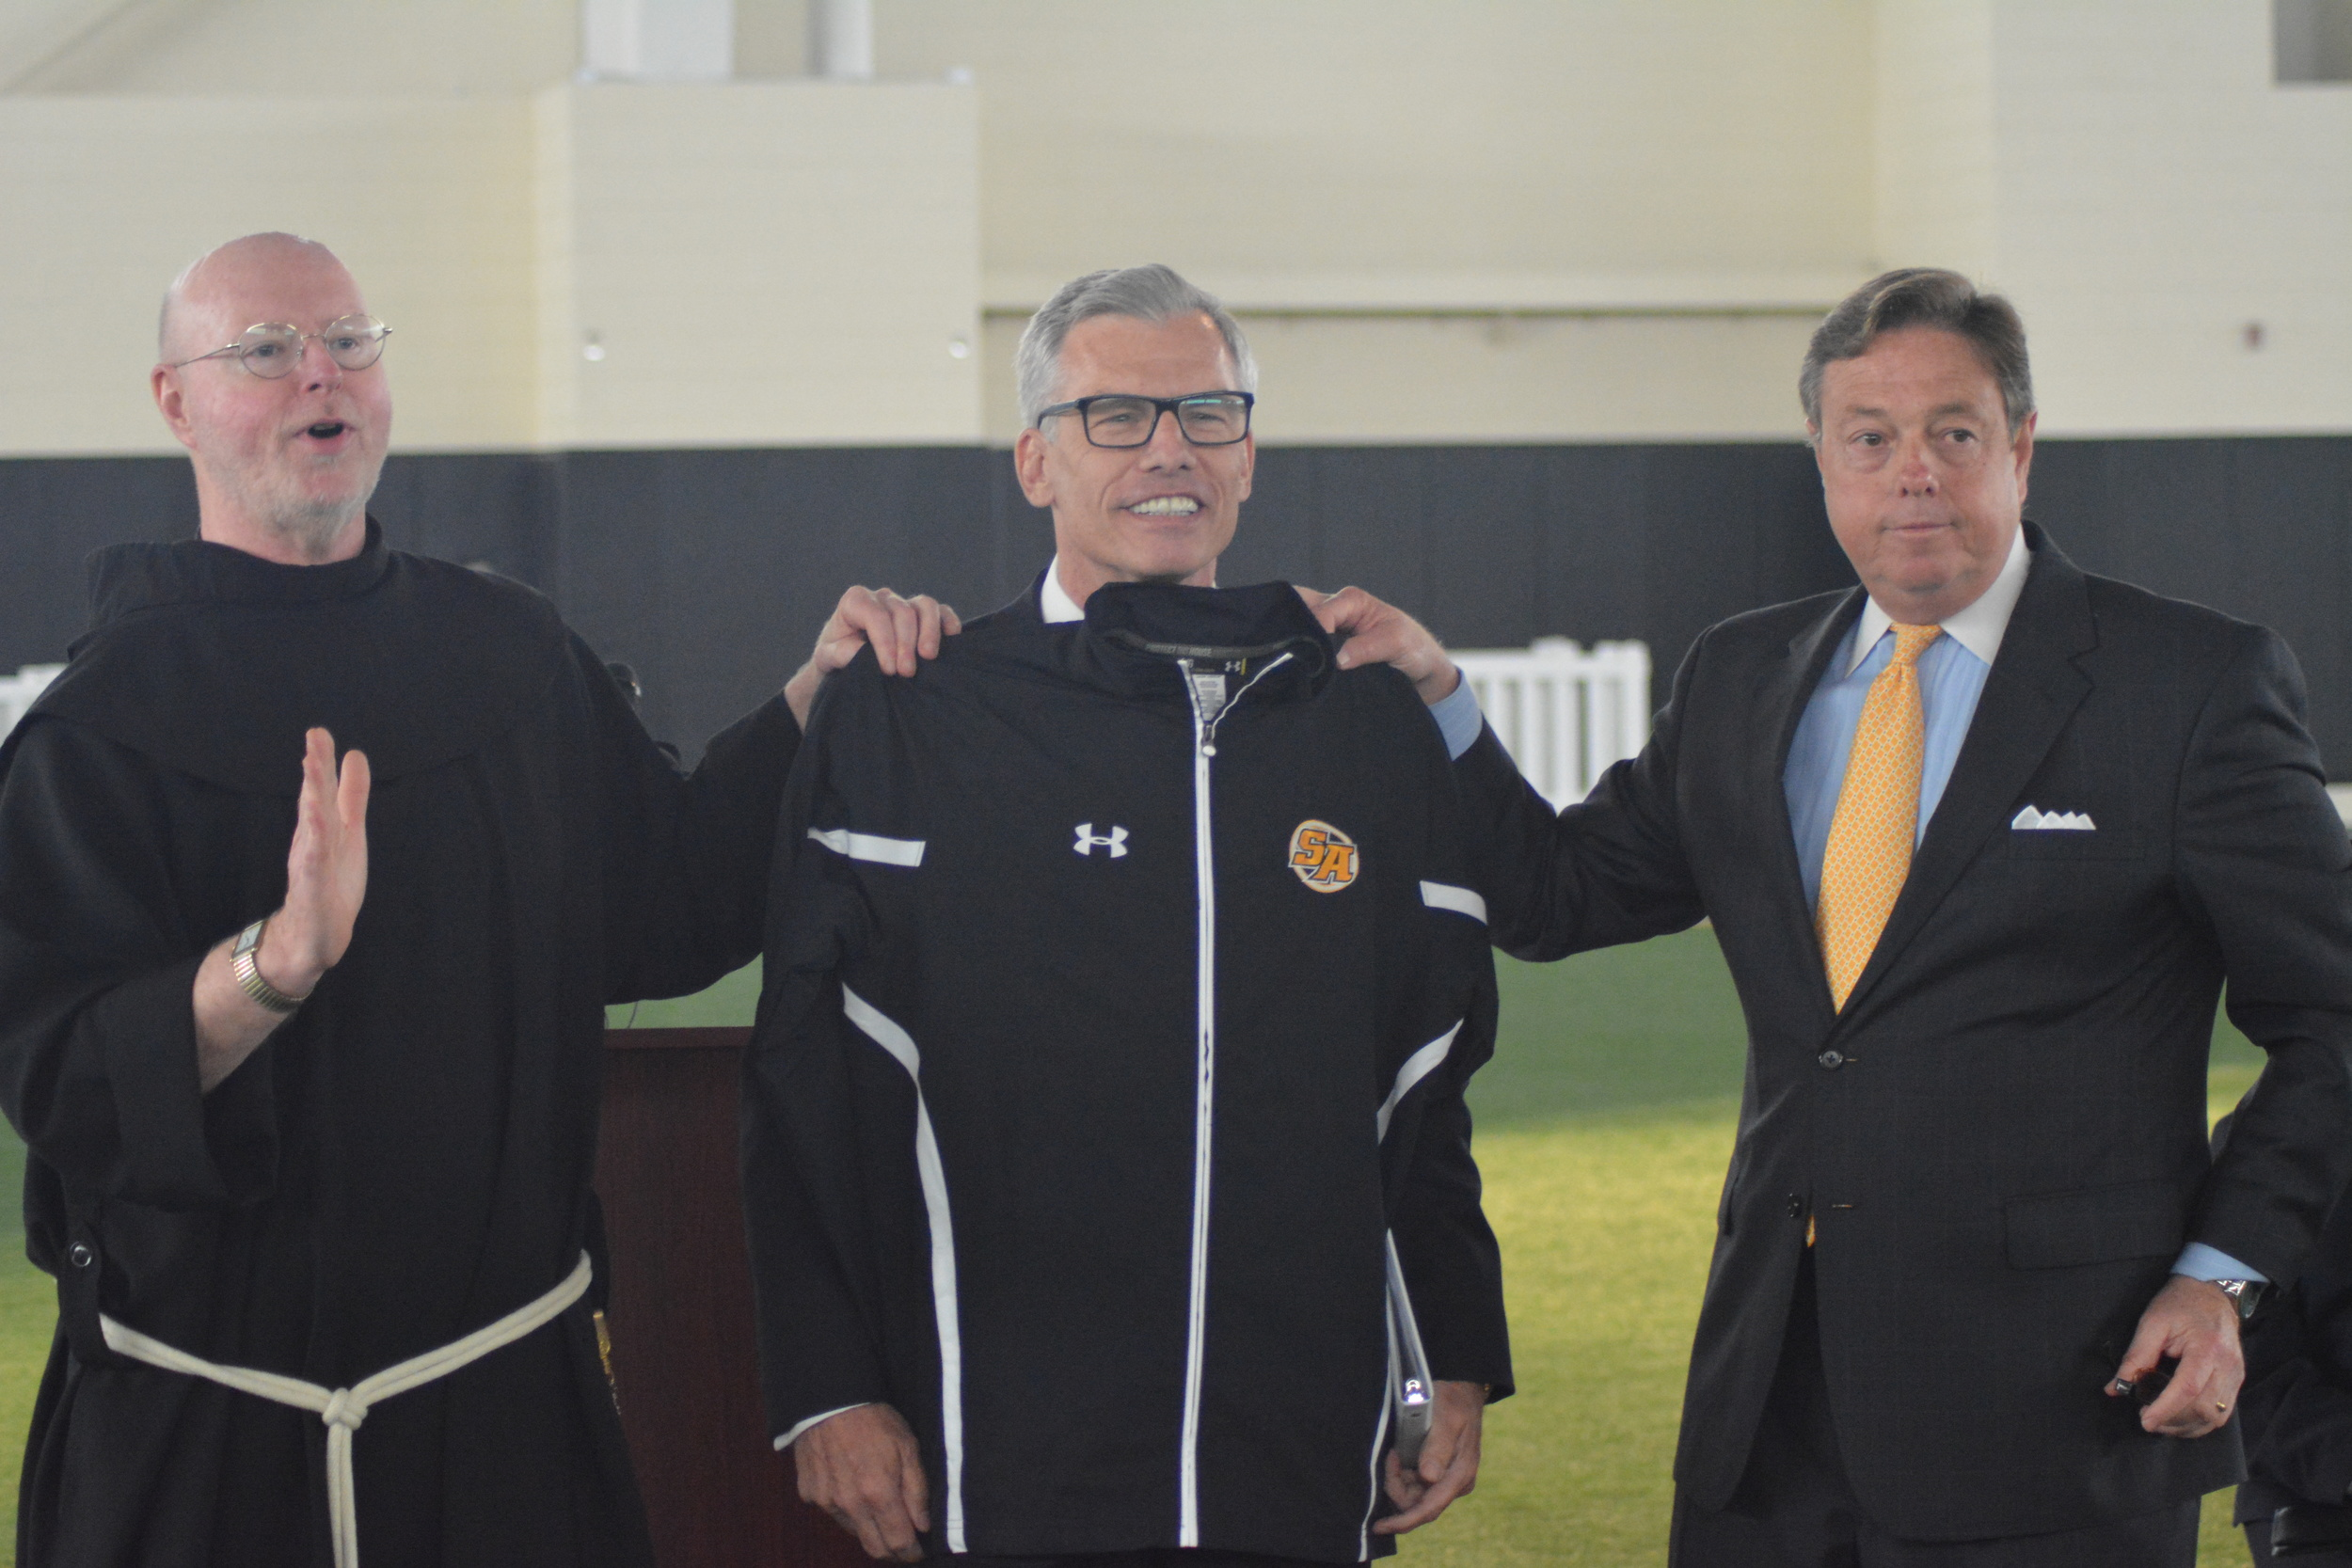 """St. Anthony High School's Principal Brother Gary Cregan, left, and Director of Development Don Corrao, right, present James Metzger, center, with honors after announcing hedonated the """"lead gift"""" towards construction of the James C. Metzger Stadium, which school officials hope to complete before the year's end."""